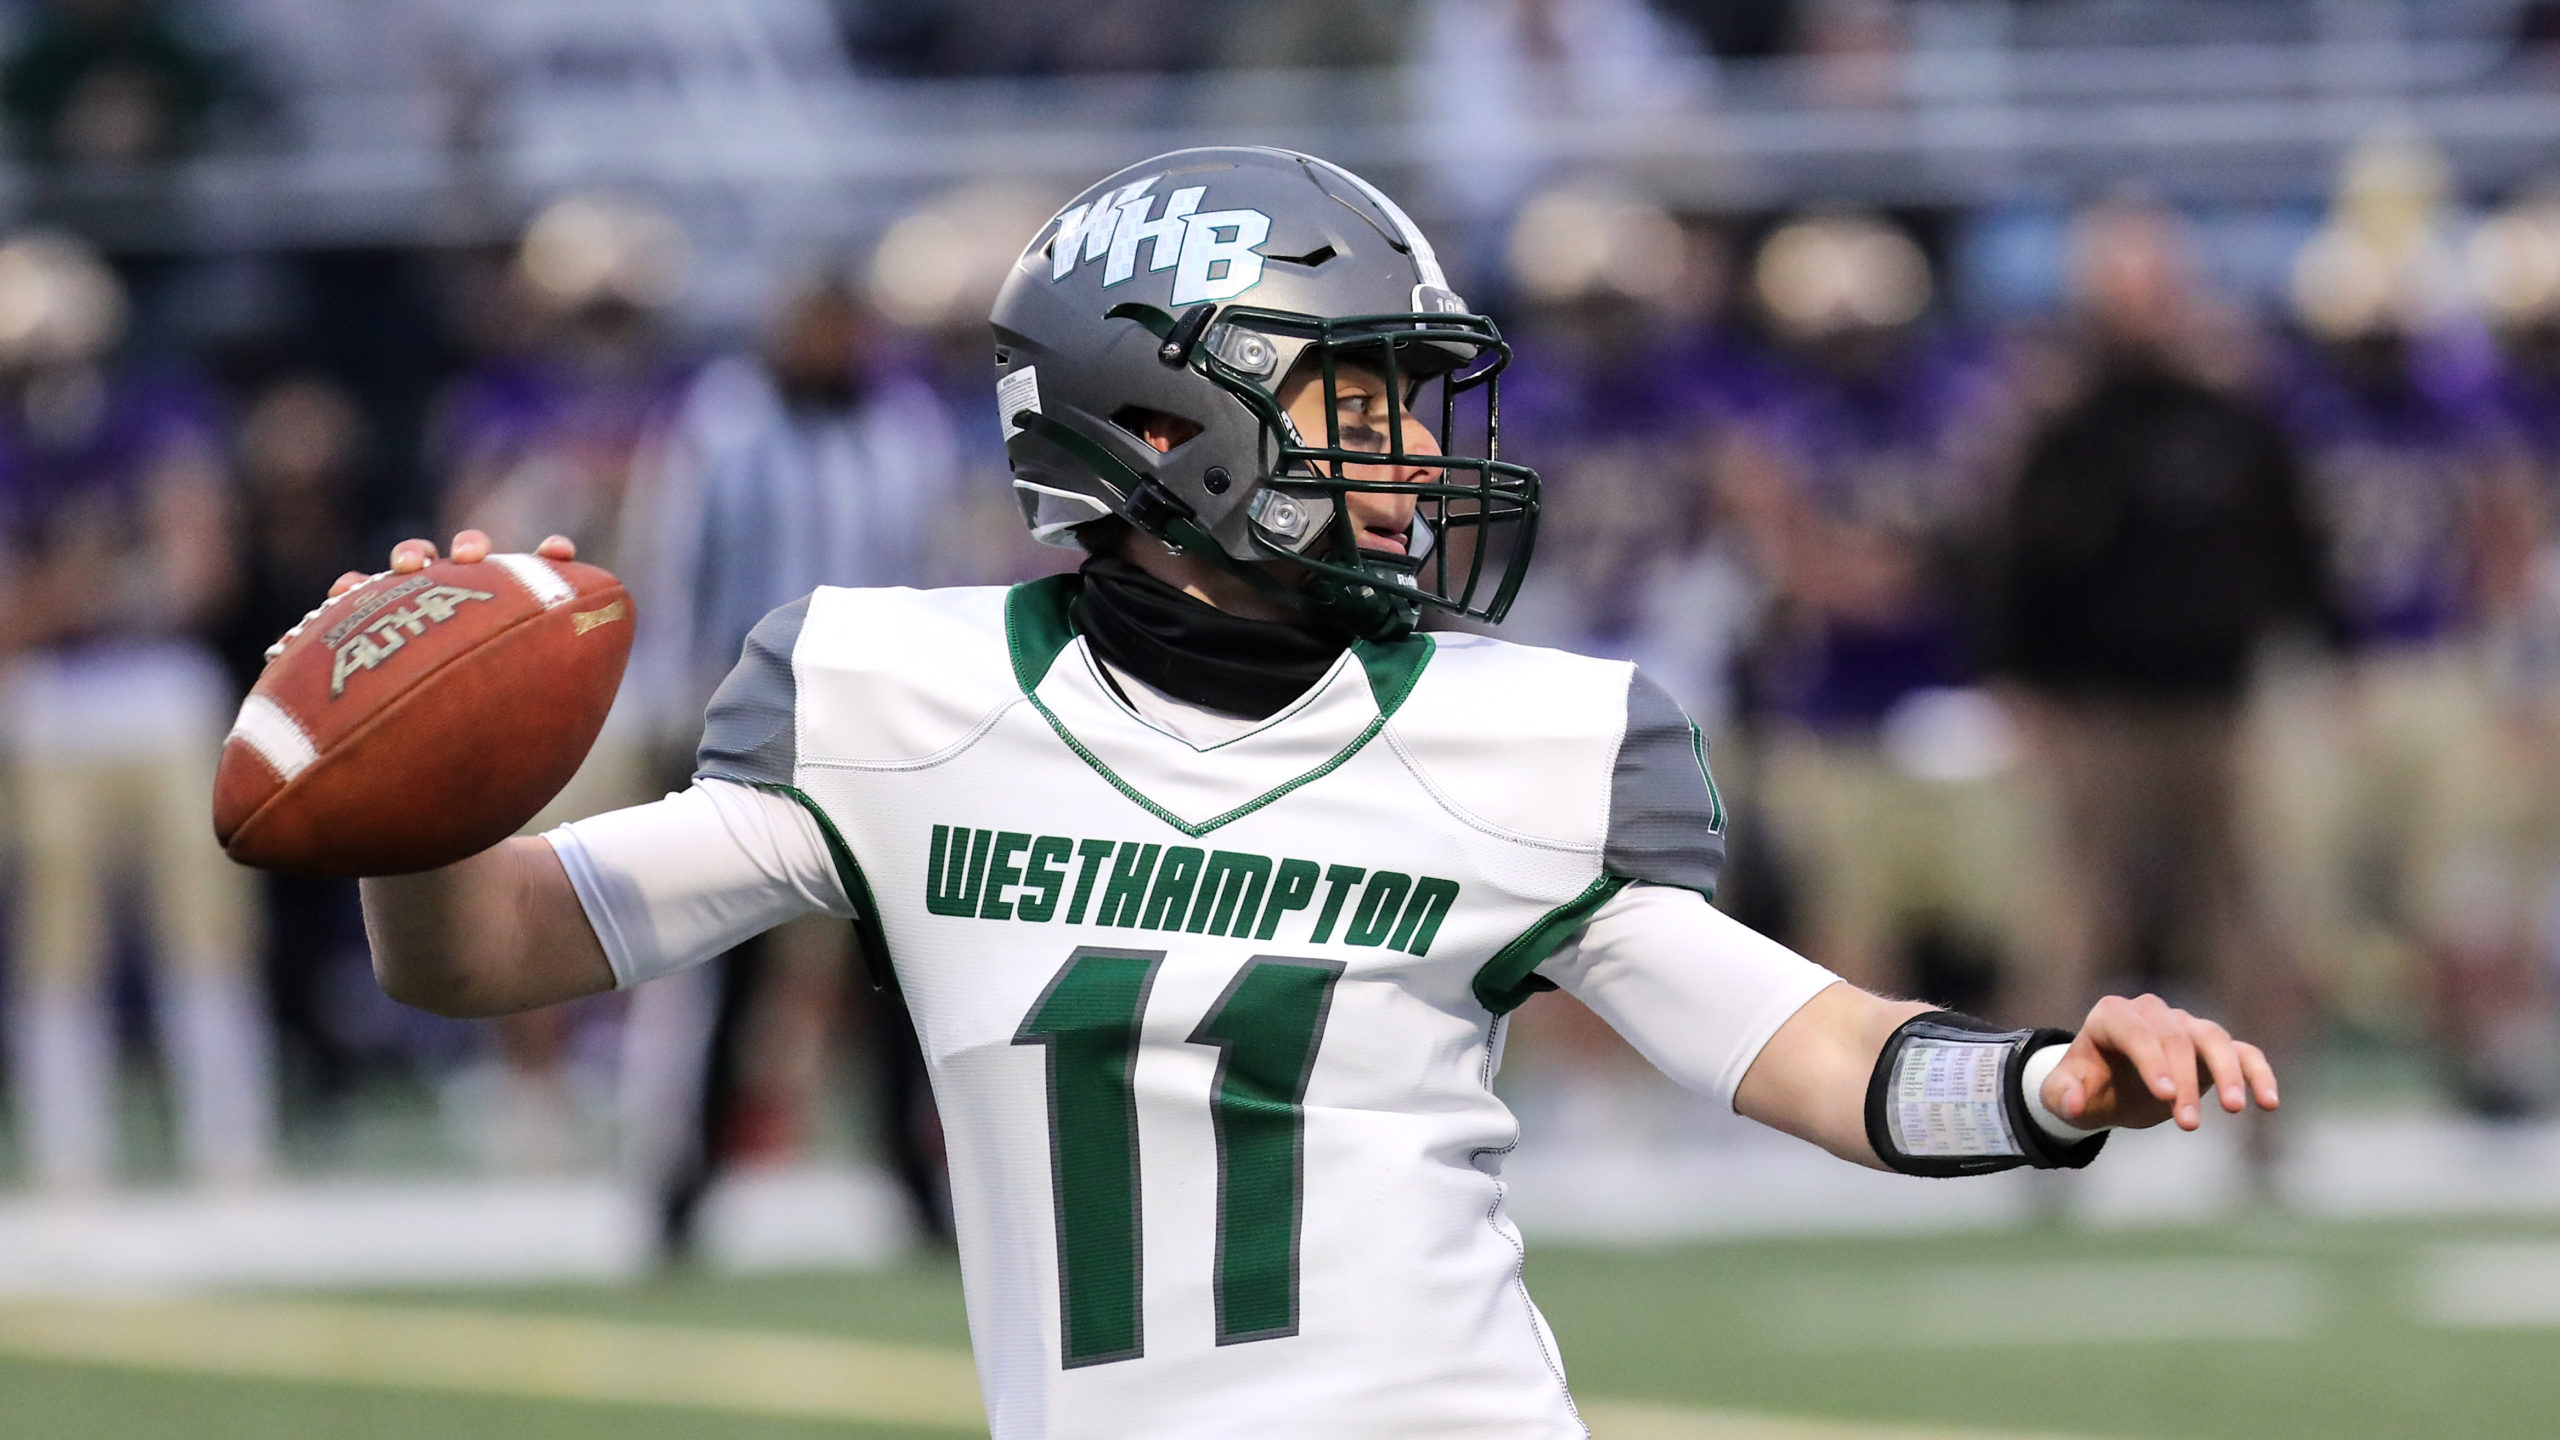 Westhampton Beach quarterback Christian Capuano finished 8 for 17 with 202 yards and two touchdowns.